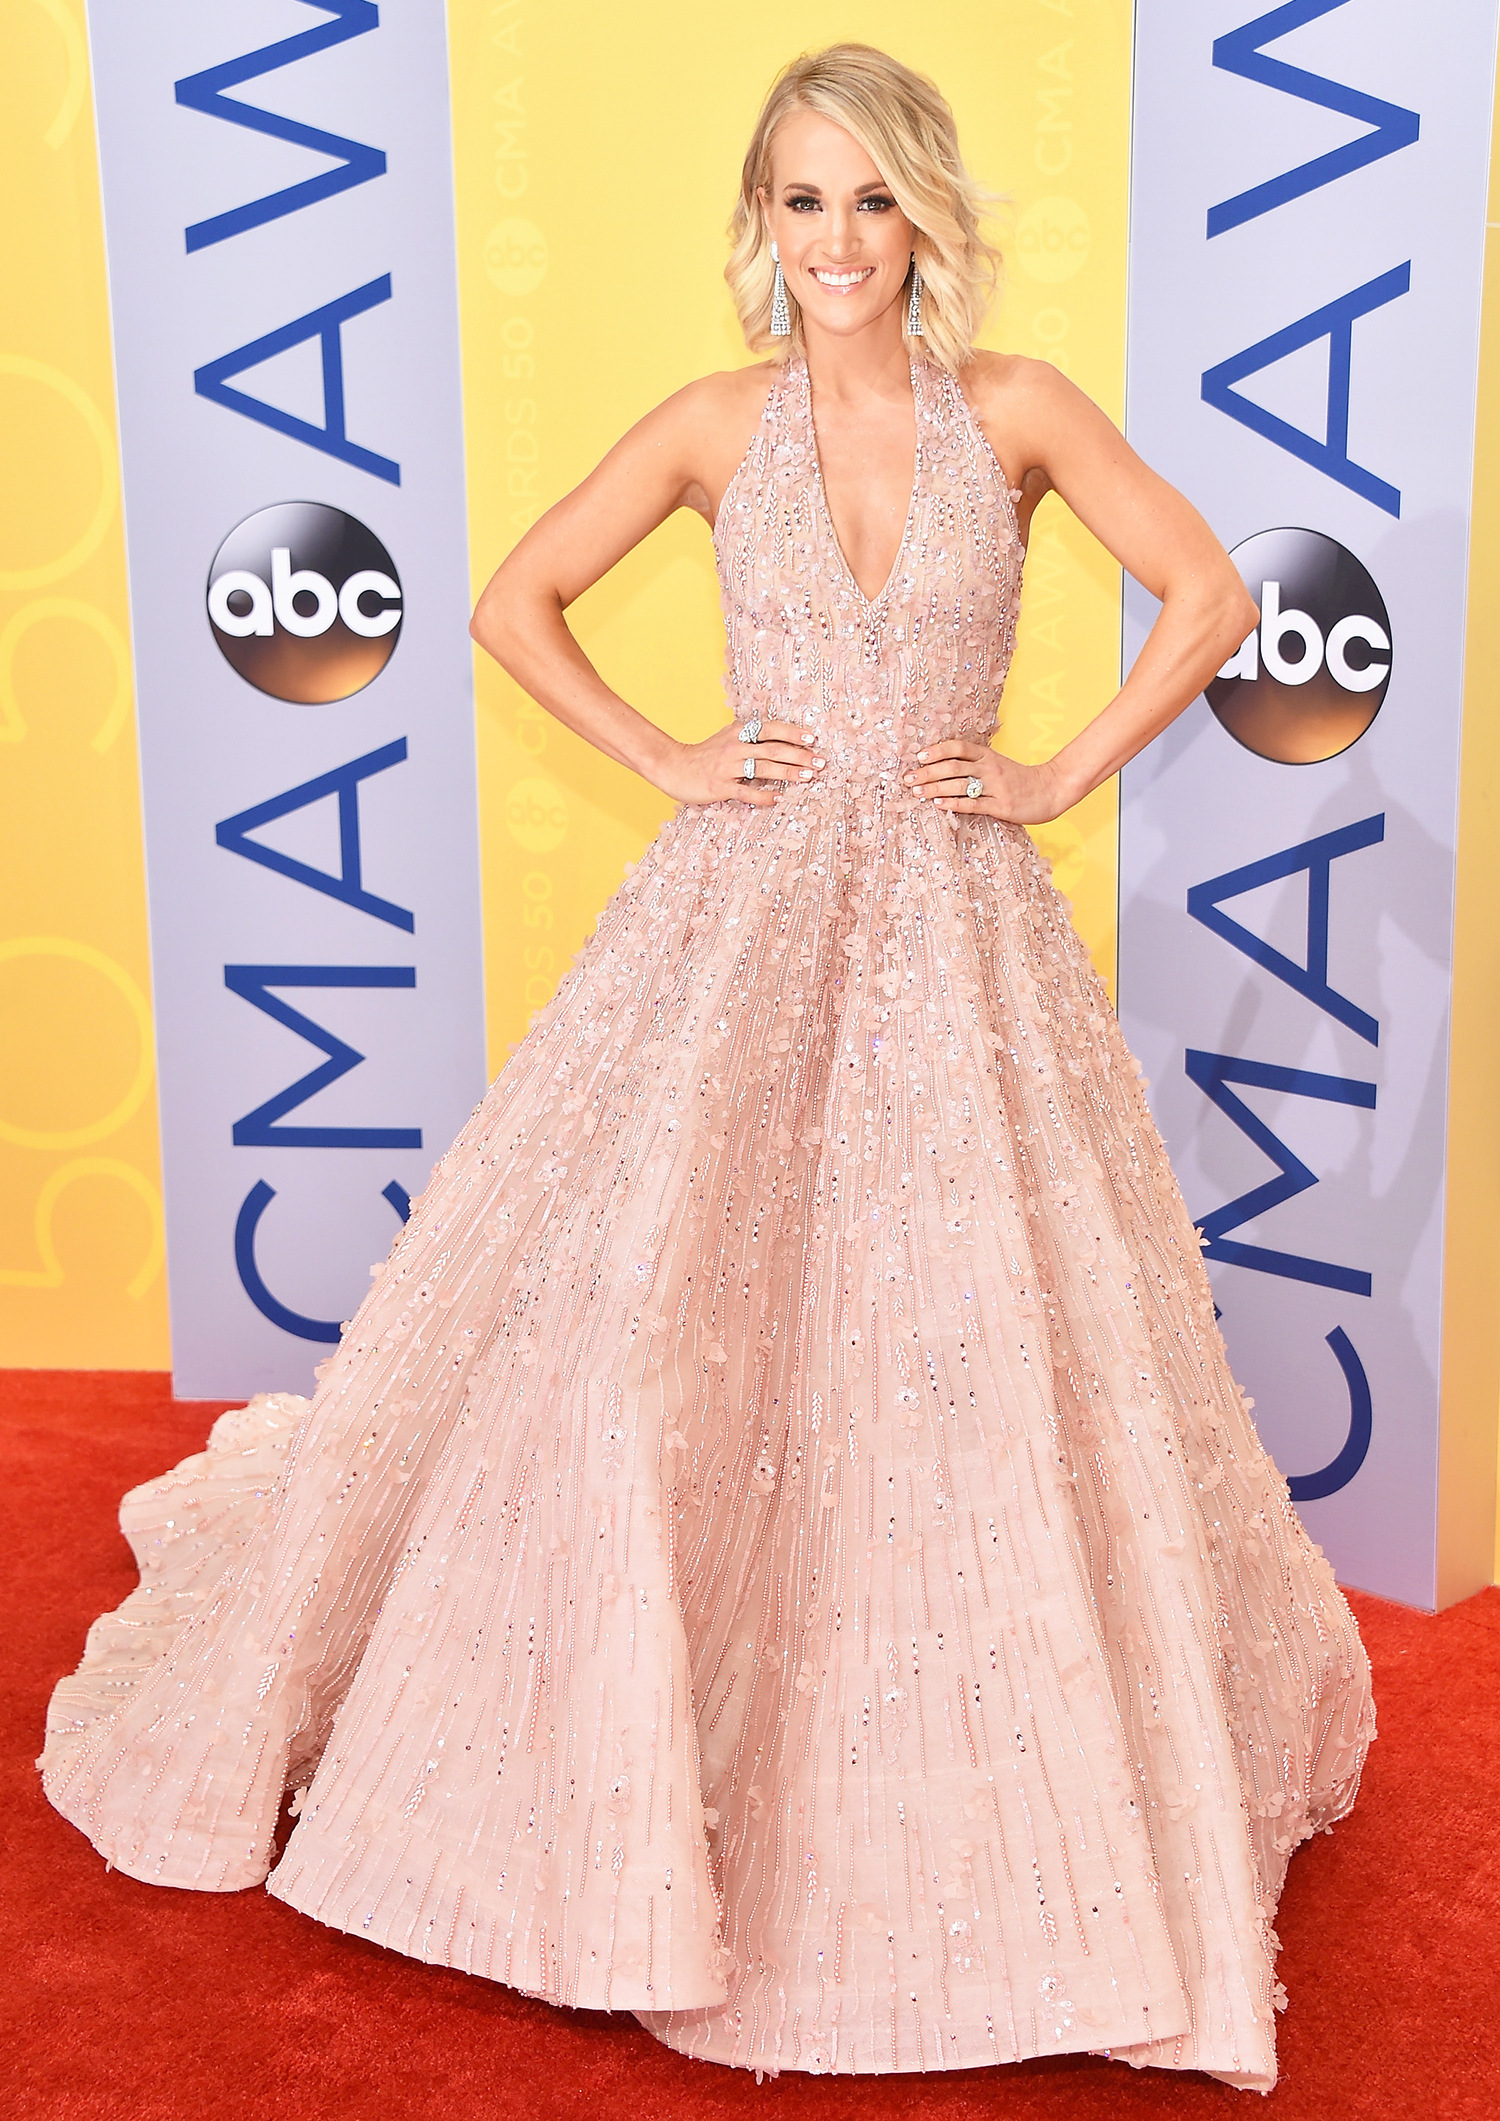 CMAs 2016: Carrie Underwood Wears a Dusty Pink Gown